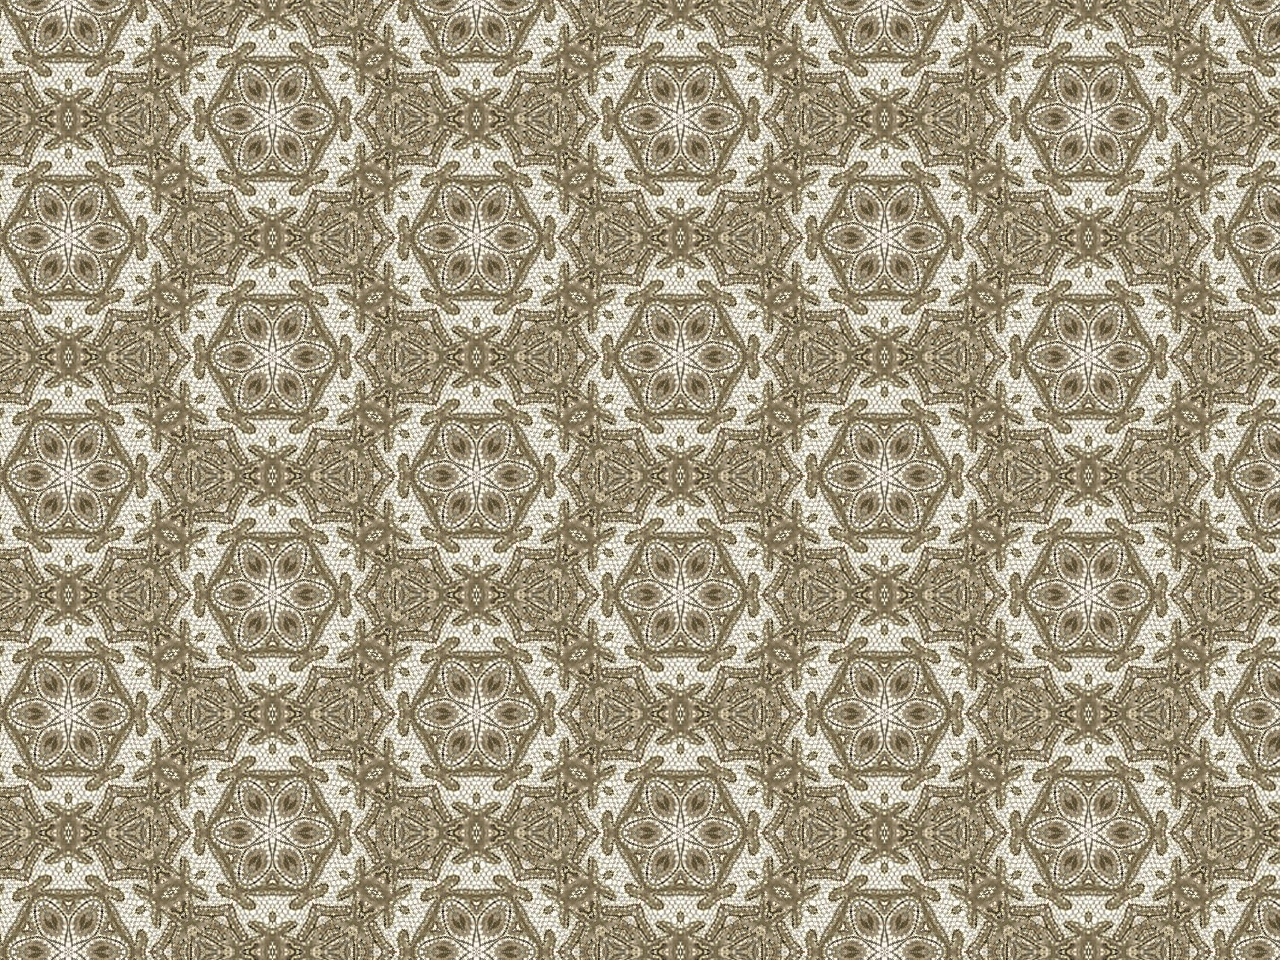 lace background images artbyjean images of lace fine vintage brown lace over 4022